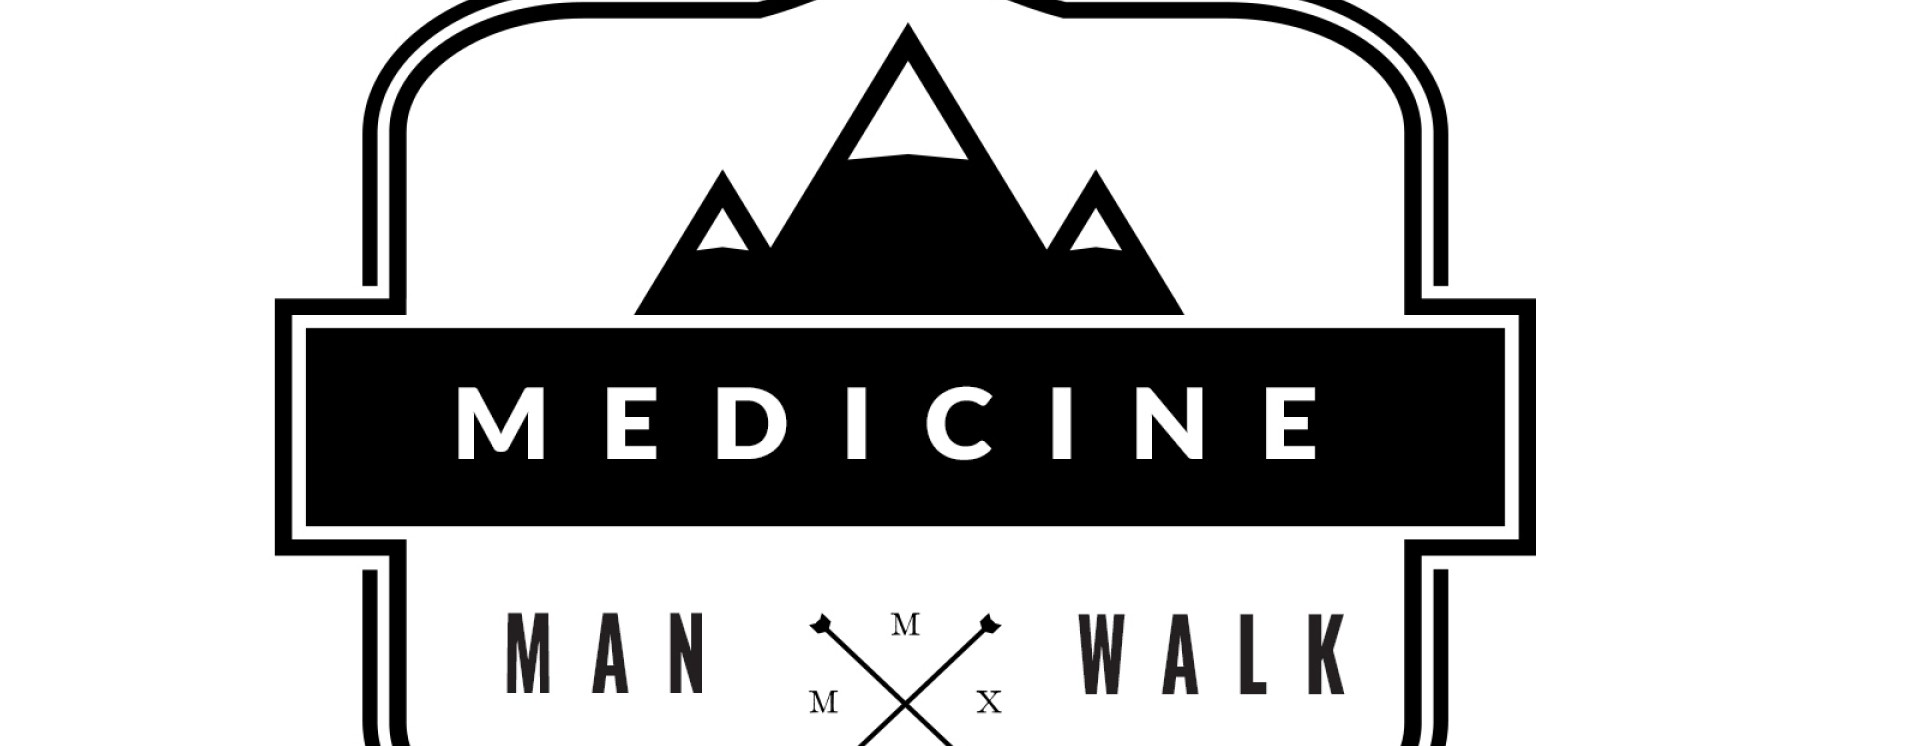 Medicine Man Walk | ReverbNation